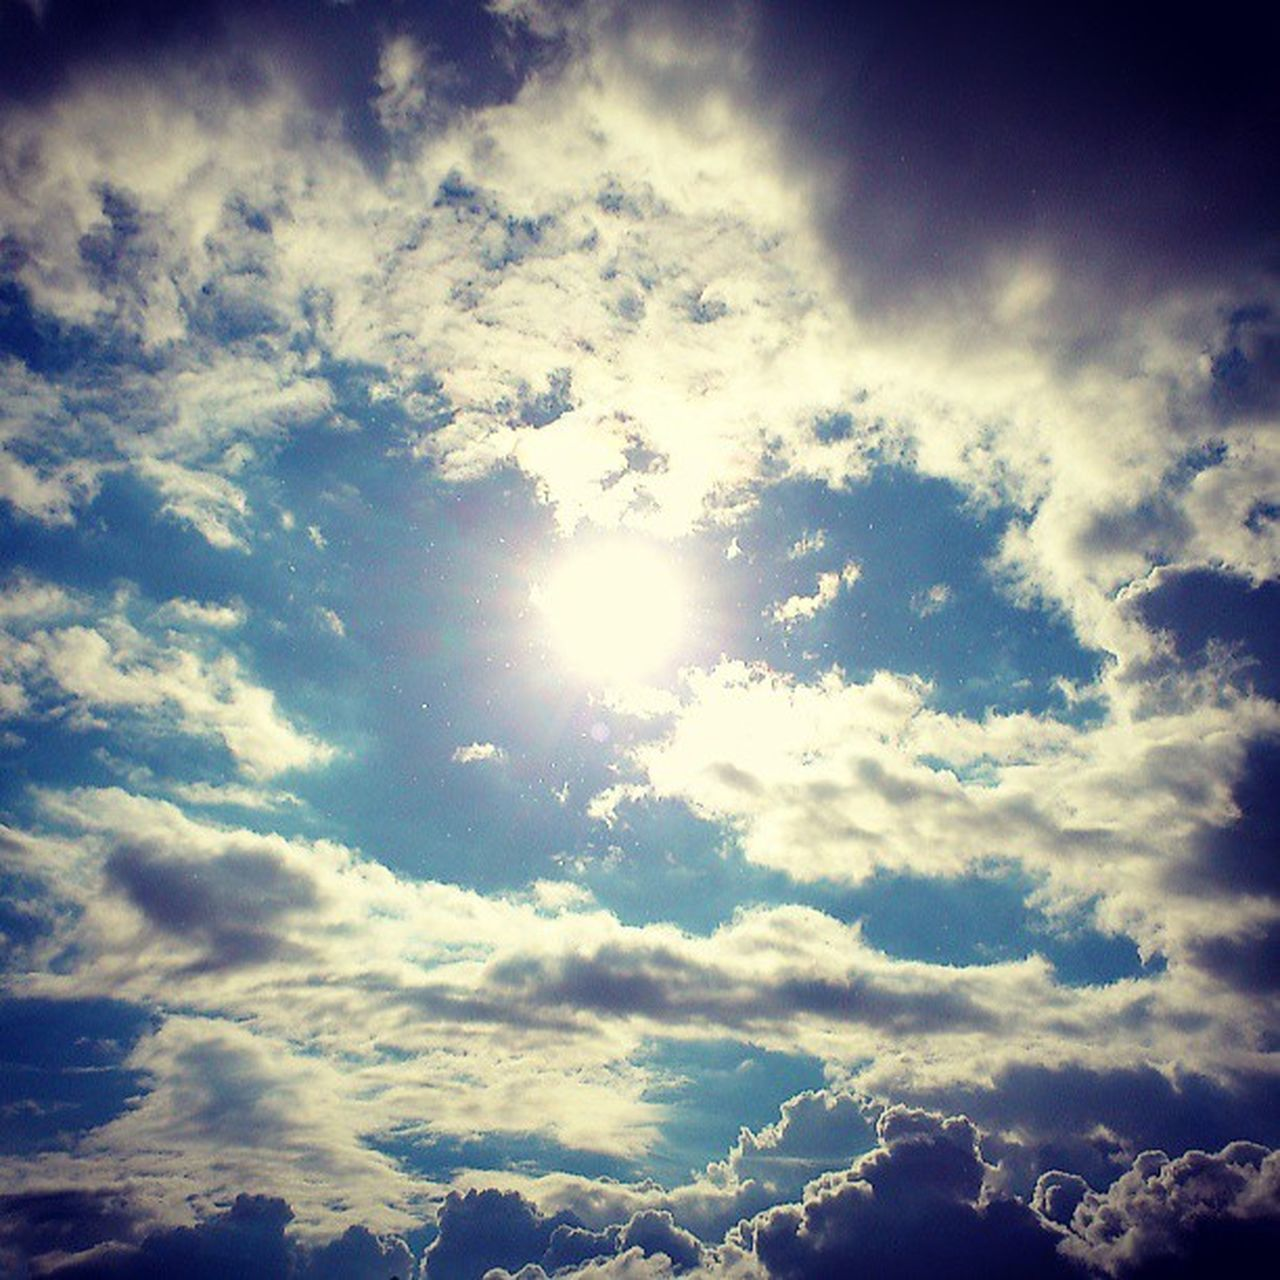 sunbeam, nature, beauty in nature, sky, sun, cloud - sky, scenics, sunlight, tranquility, cloudscape, majestic, low angle view, vibrant color, no people, backgrounds, tranquil scene, sky only, day, outdoors, full frame, blue